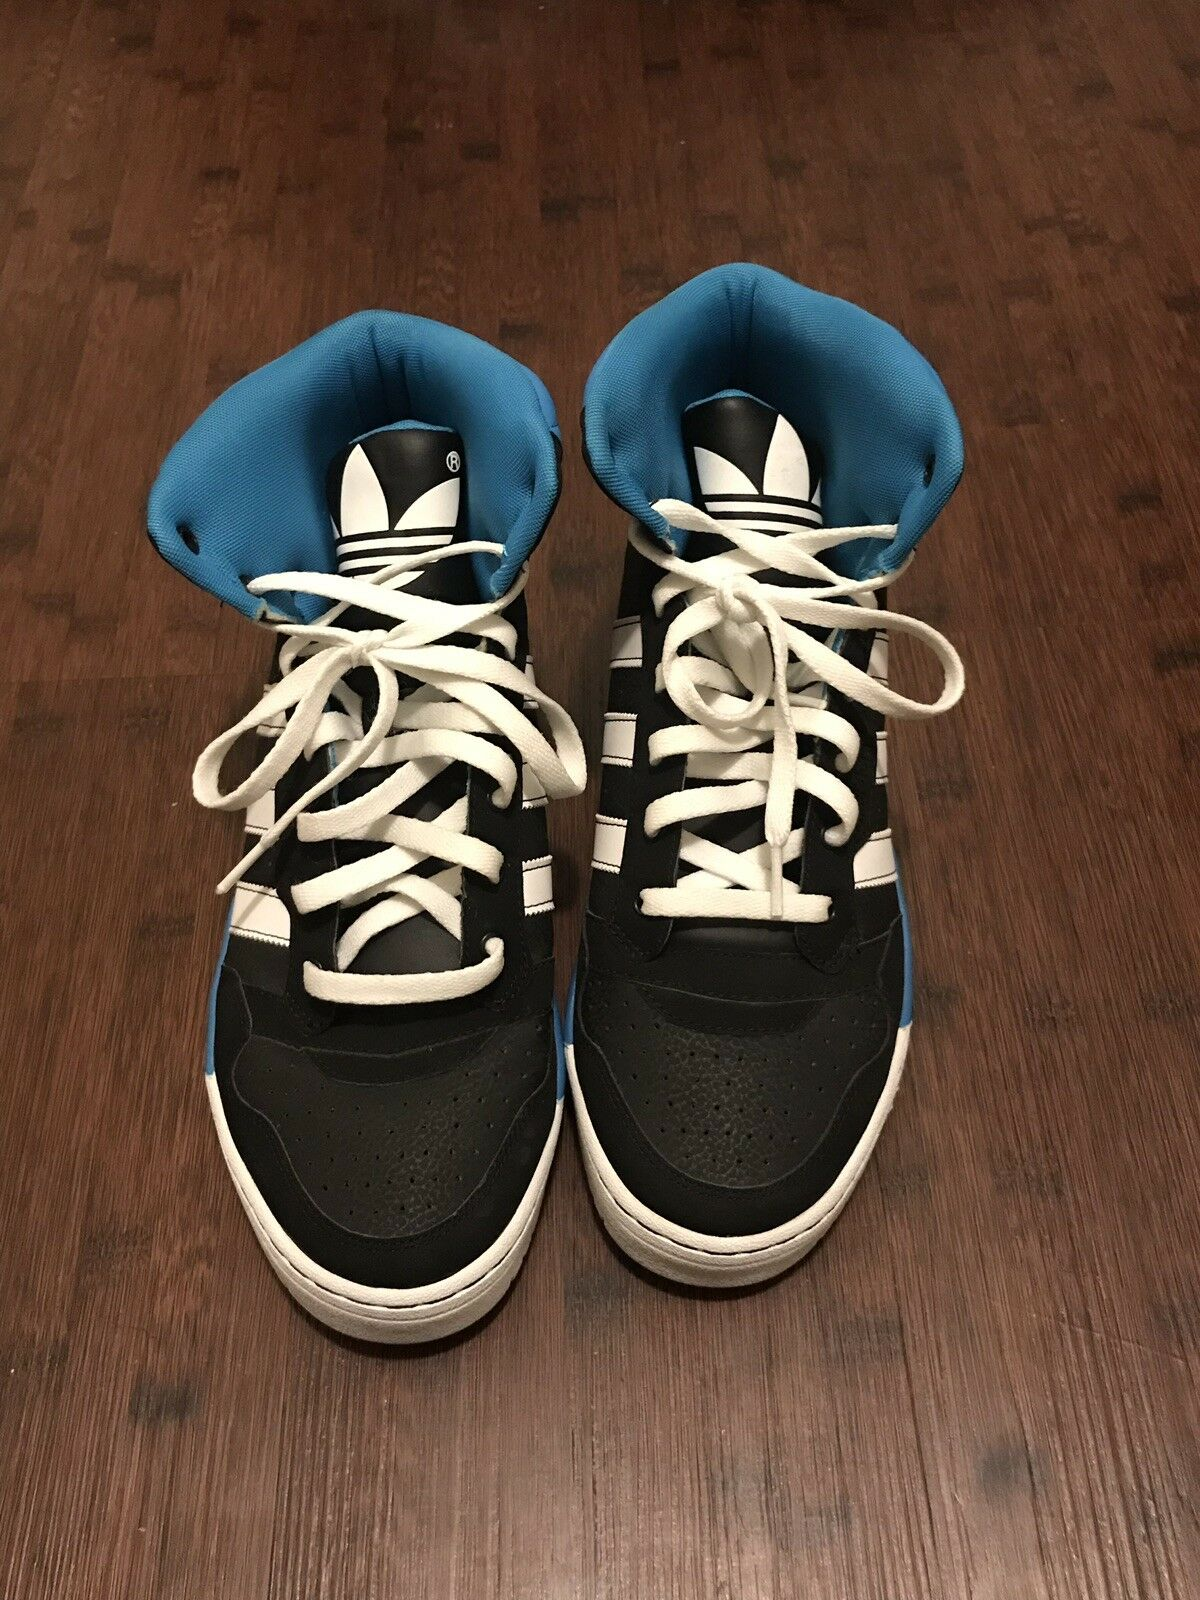 Black And bluee High Top Adidas Size 11.5